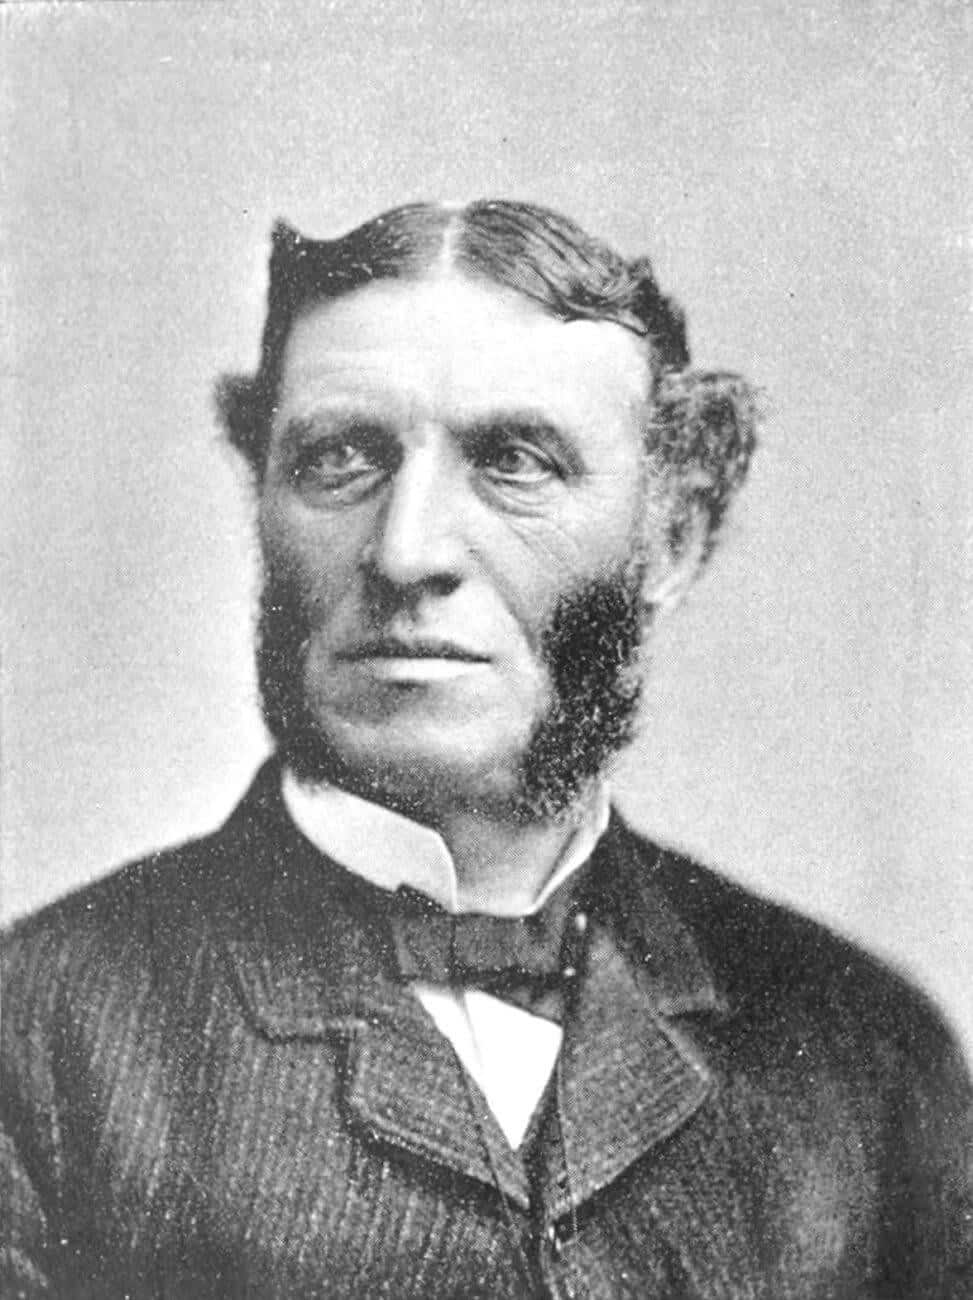 Biography of Matthew Arnold - Life and Career